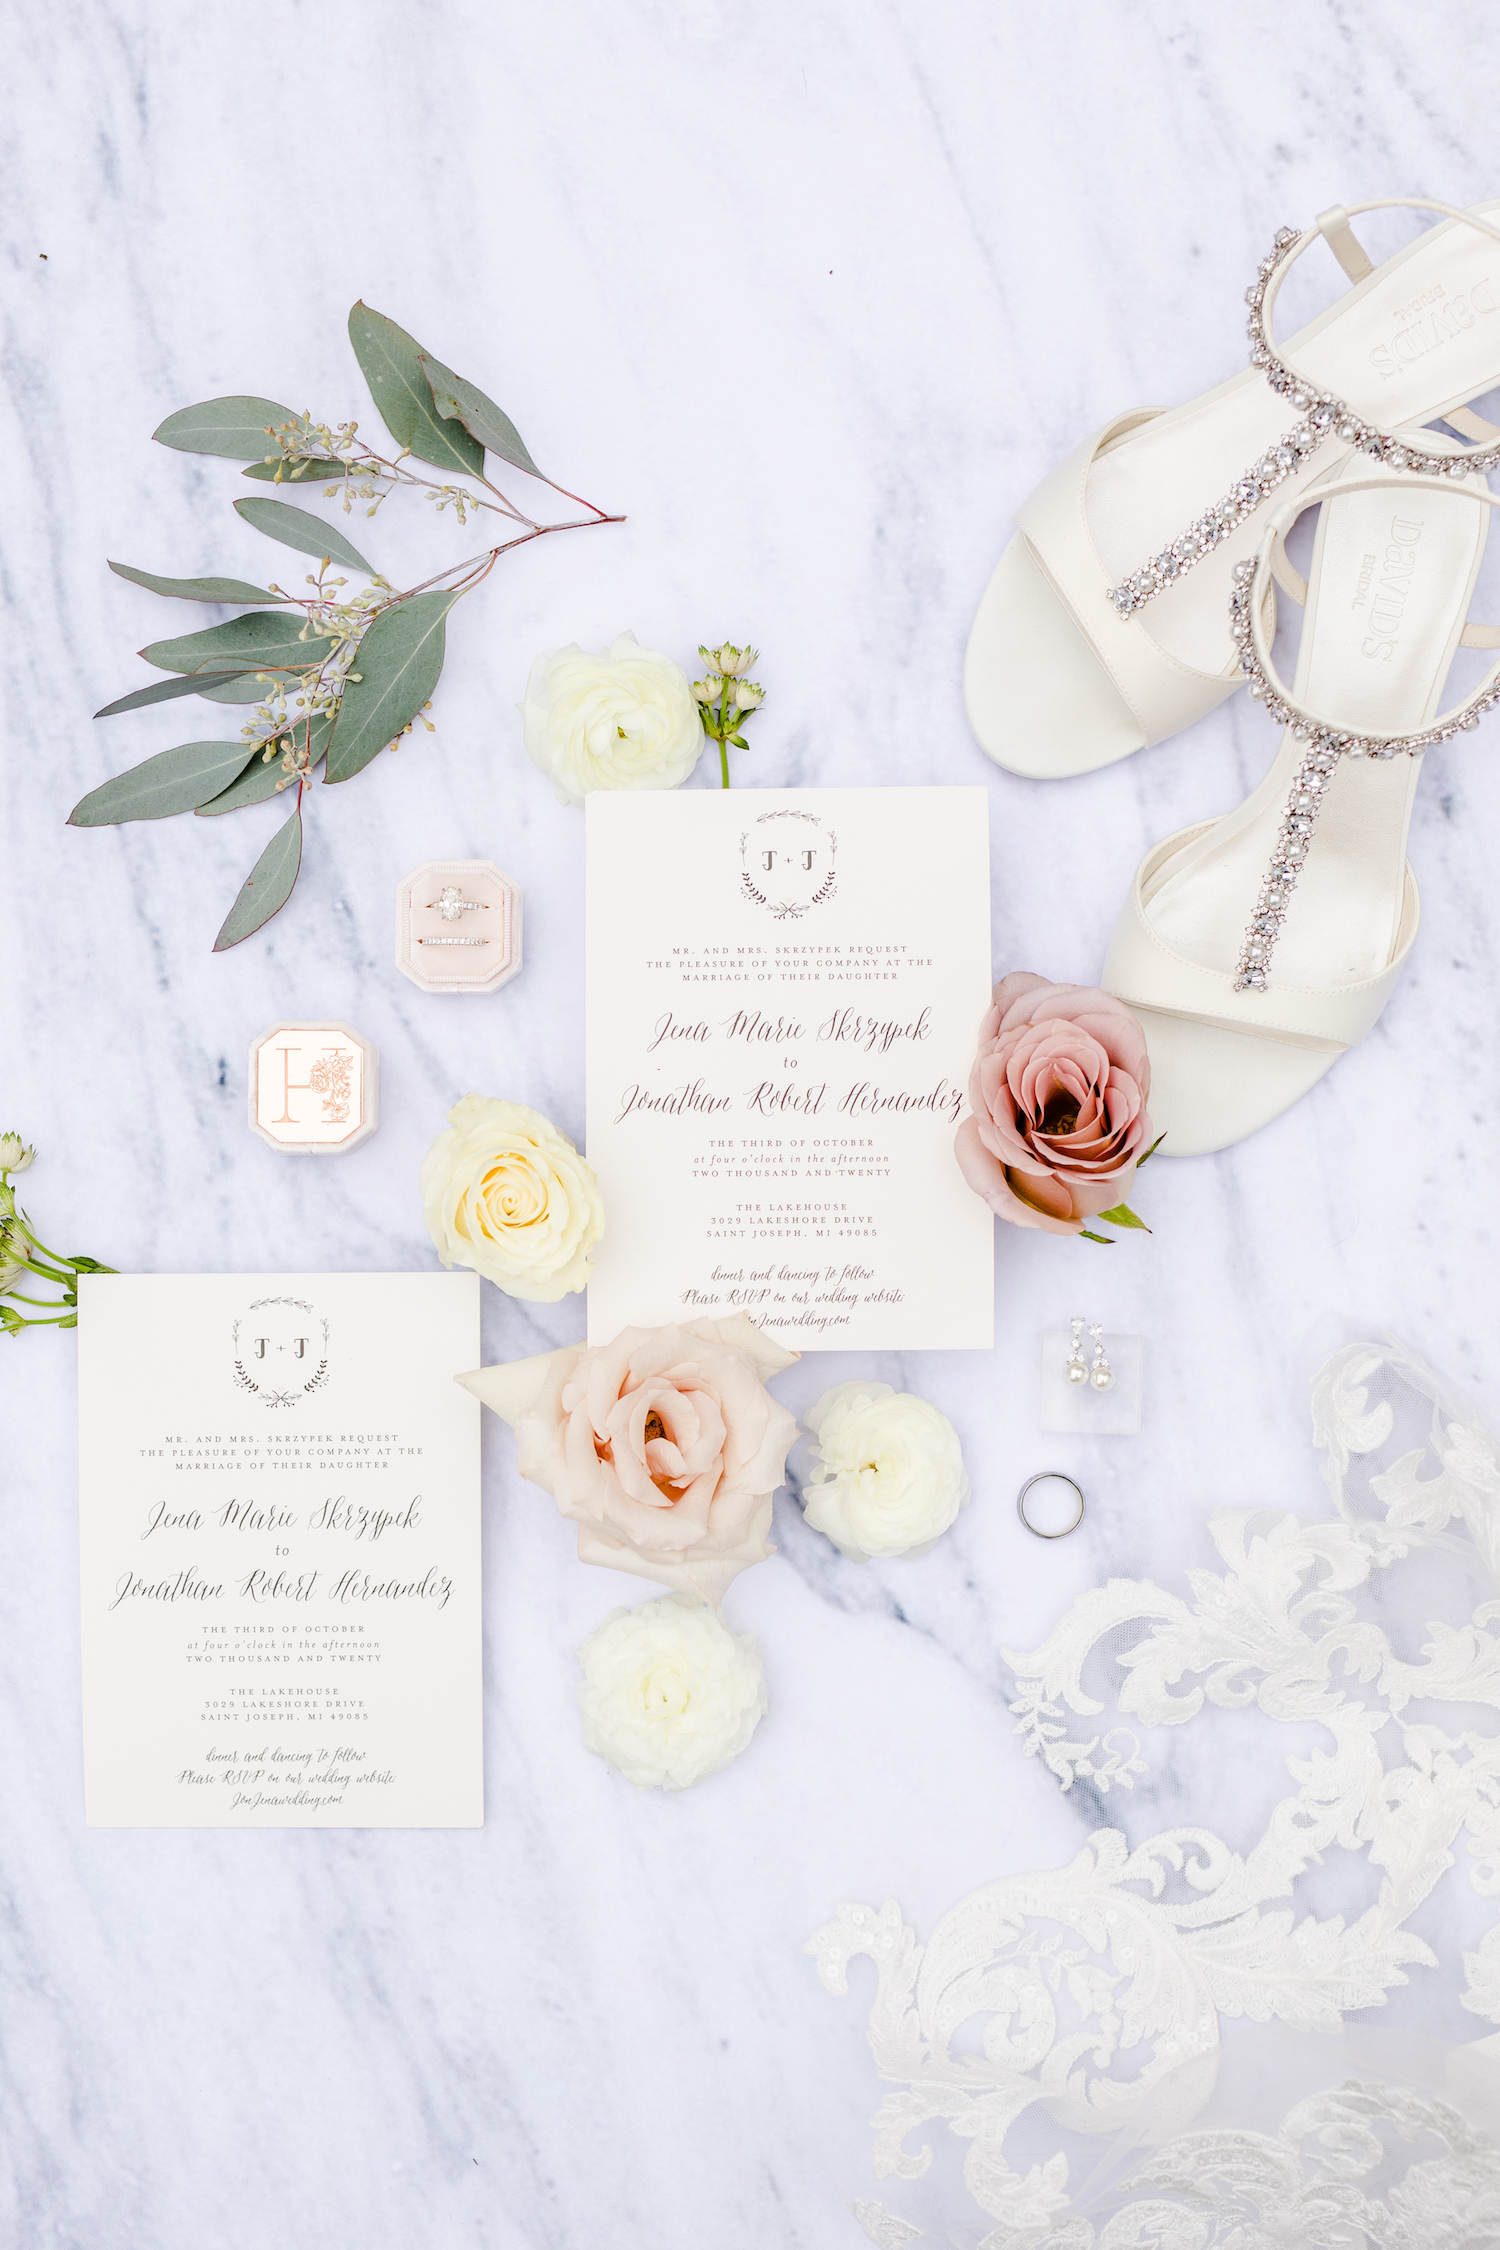 Shoes, rings, and stationary for the Lakehouse wedding